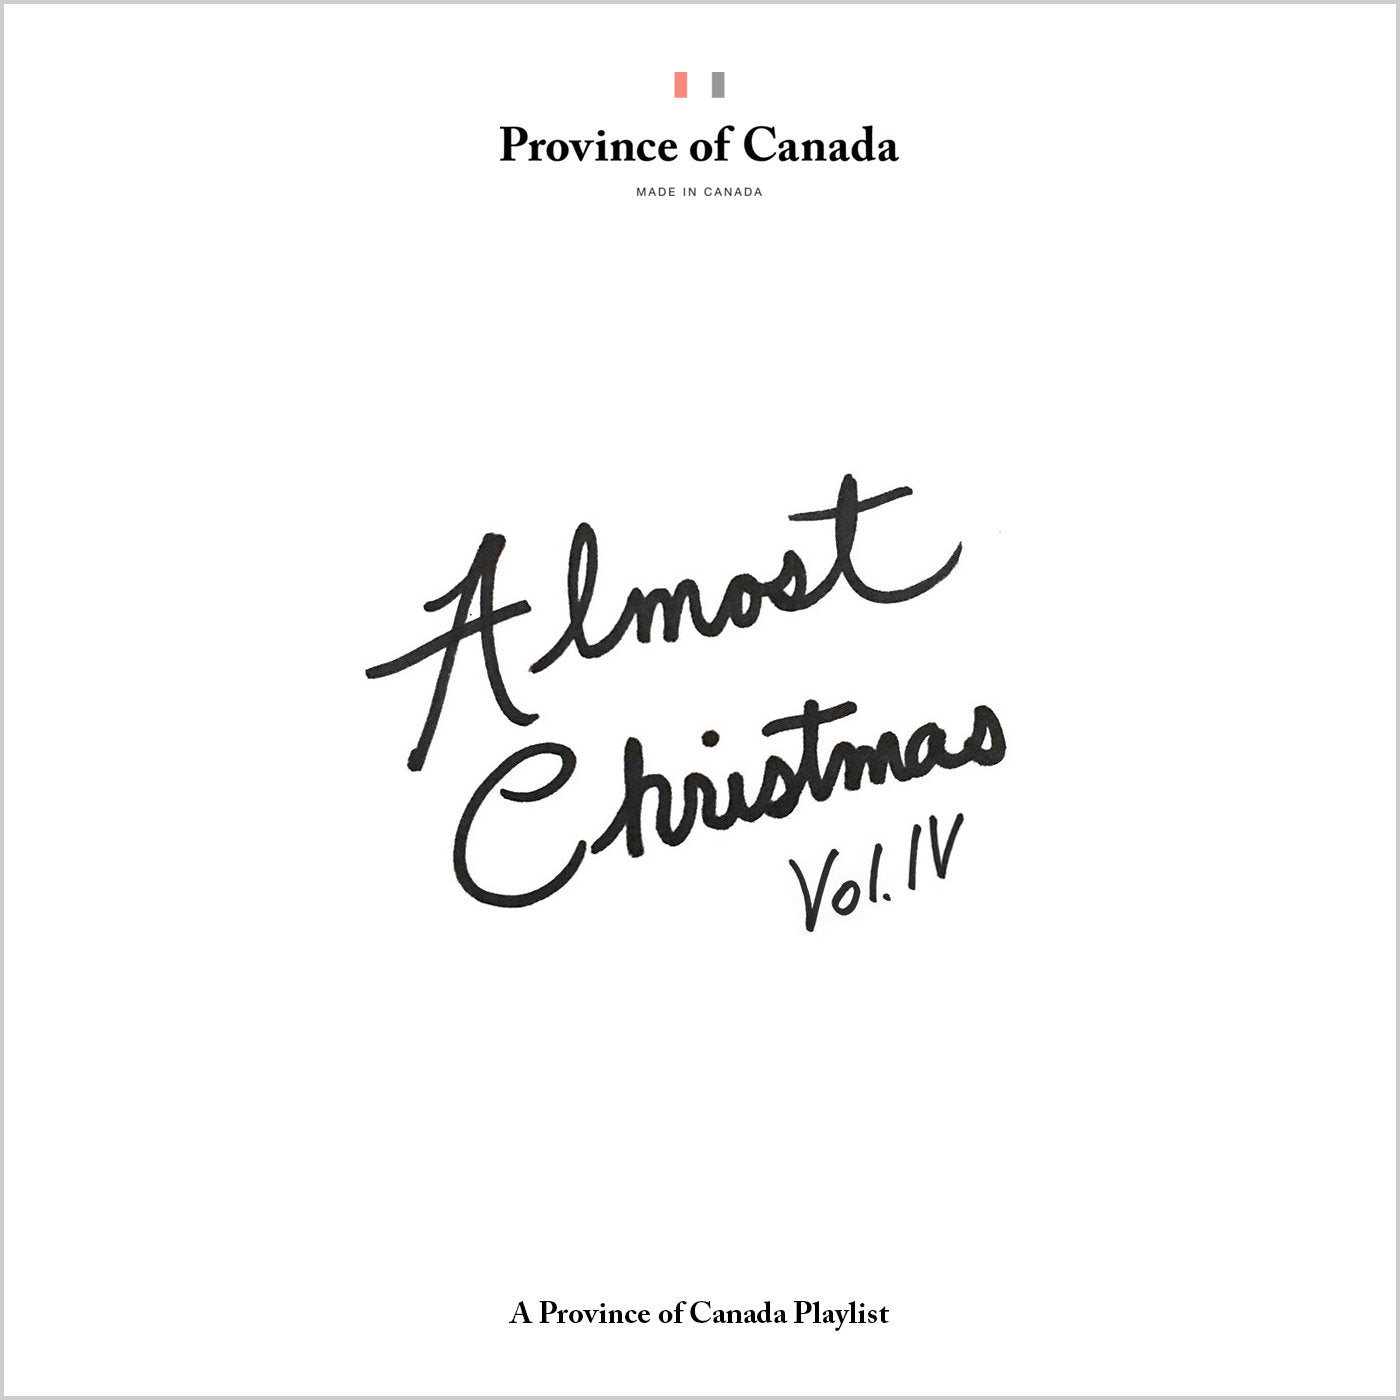 Province of Canada - Almost Christmas Vol. IV